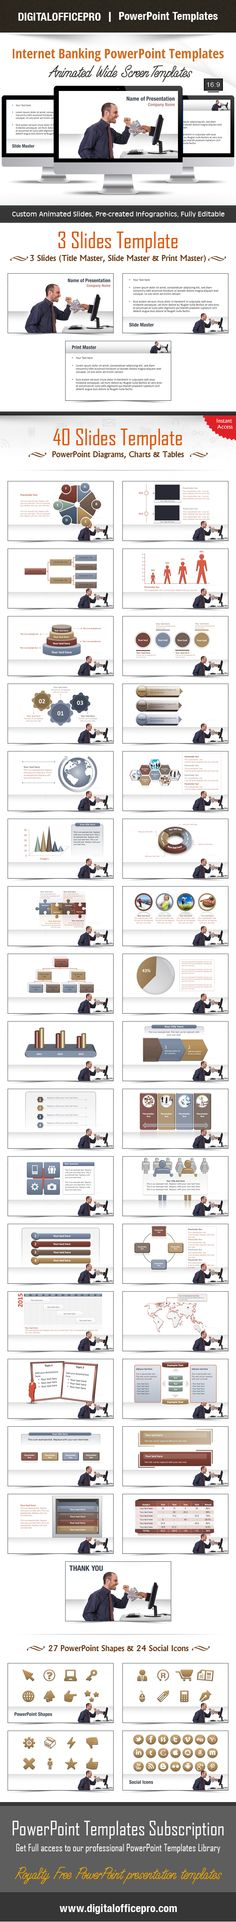 Impress and Engage your audience with Internet Banking PowerPoint Template and Internet Banking PowerPoint Backgrounds from DigitalOfficePro. Each template comes with a set of PowerPoint Diagrams, Charts & Shapes and are available for instant download.